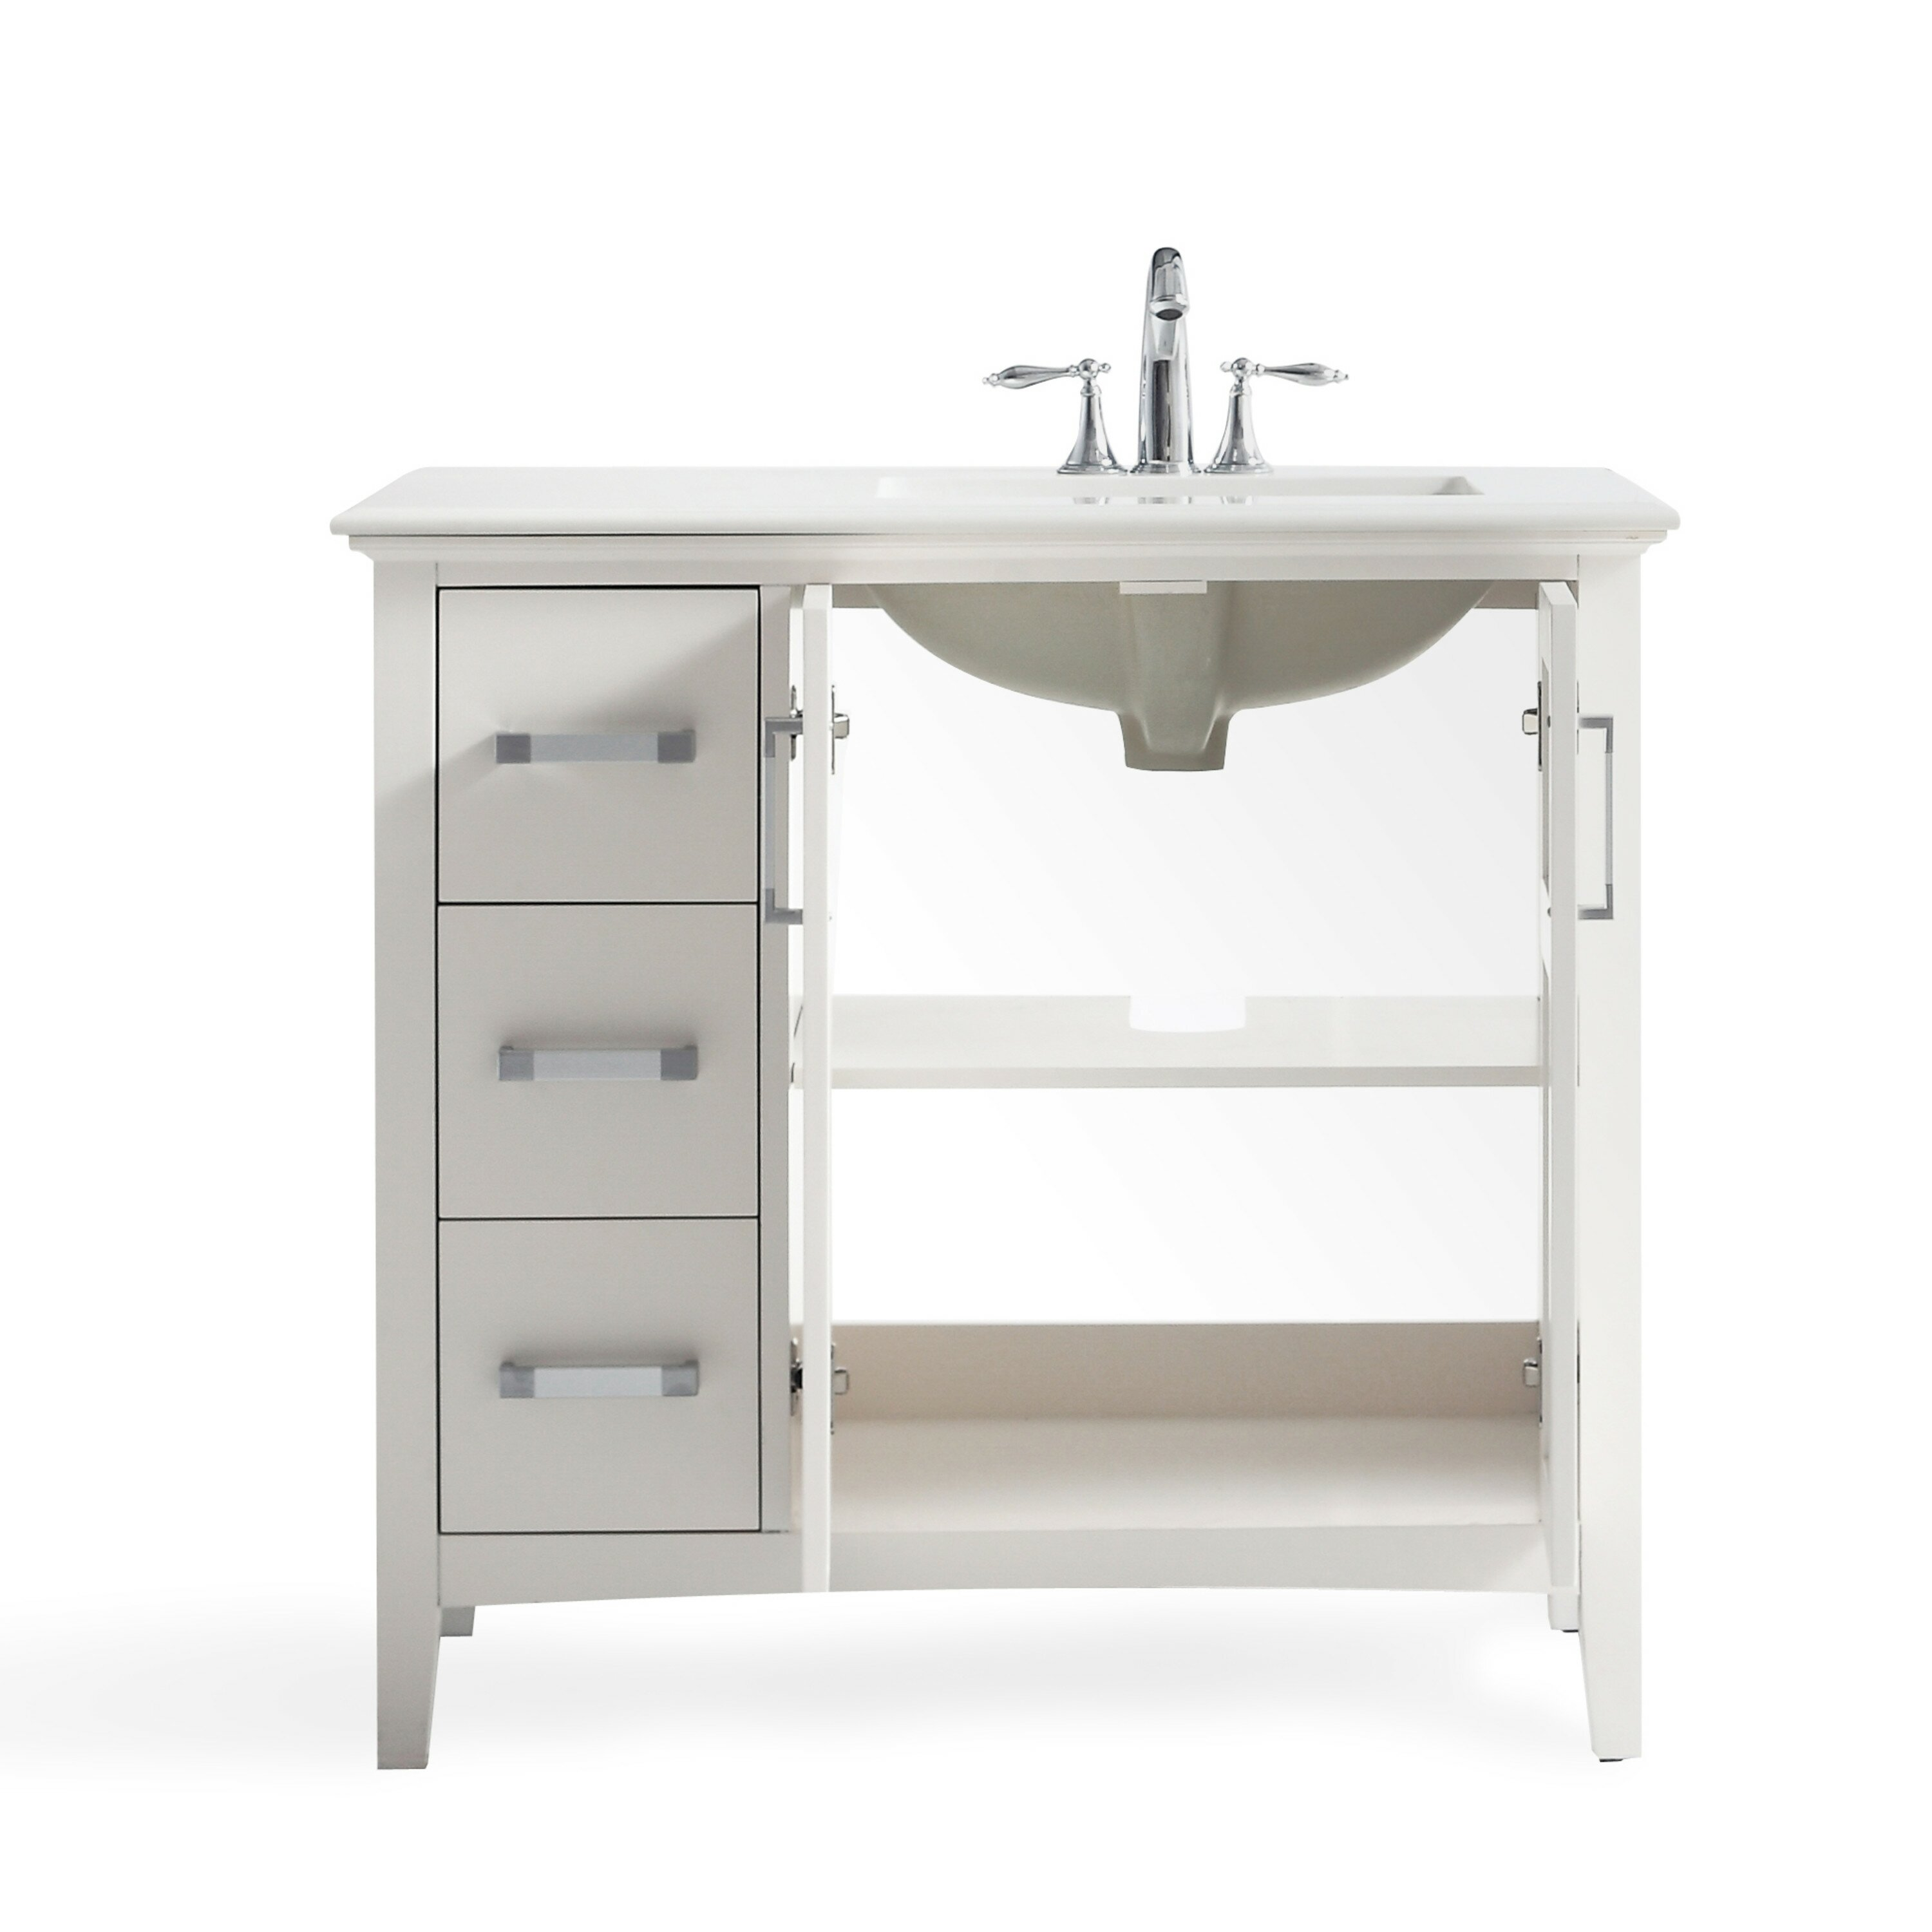 Offset Vanity Tops Latest Image Is Loading With Offset Vanity Tops Beautiful Offset Vanity